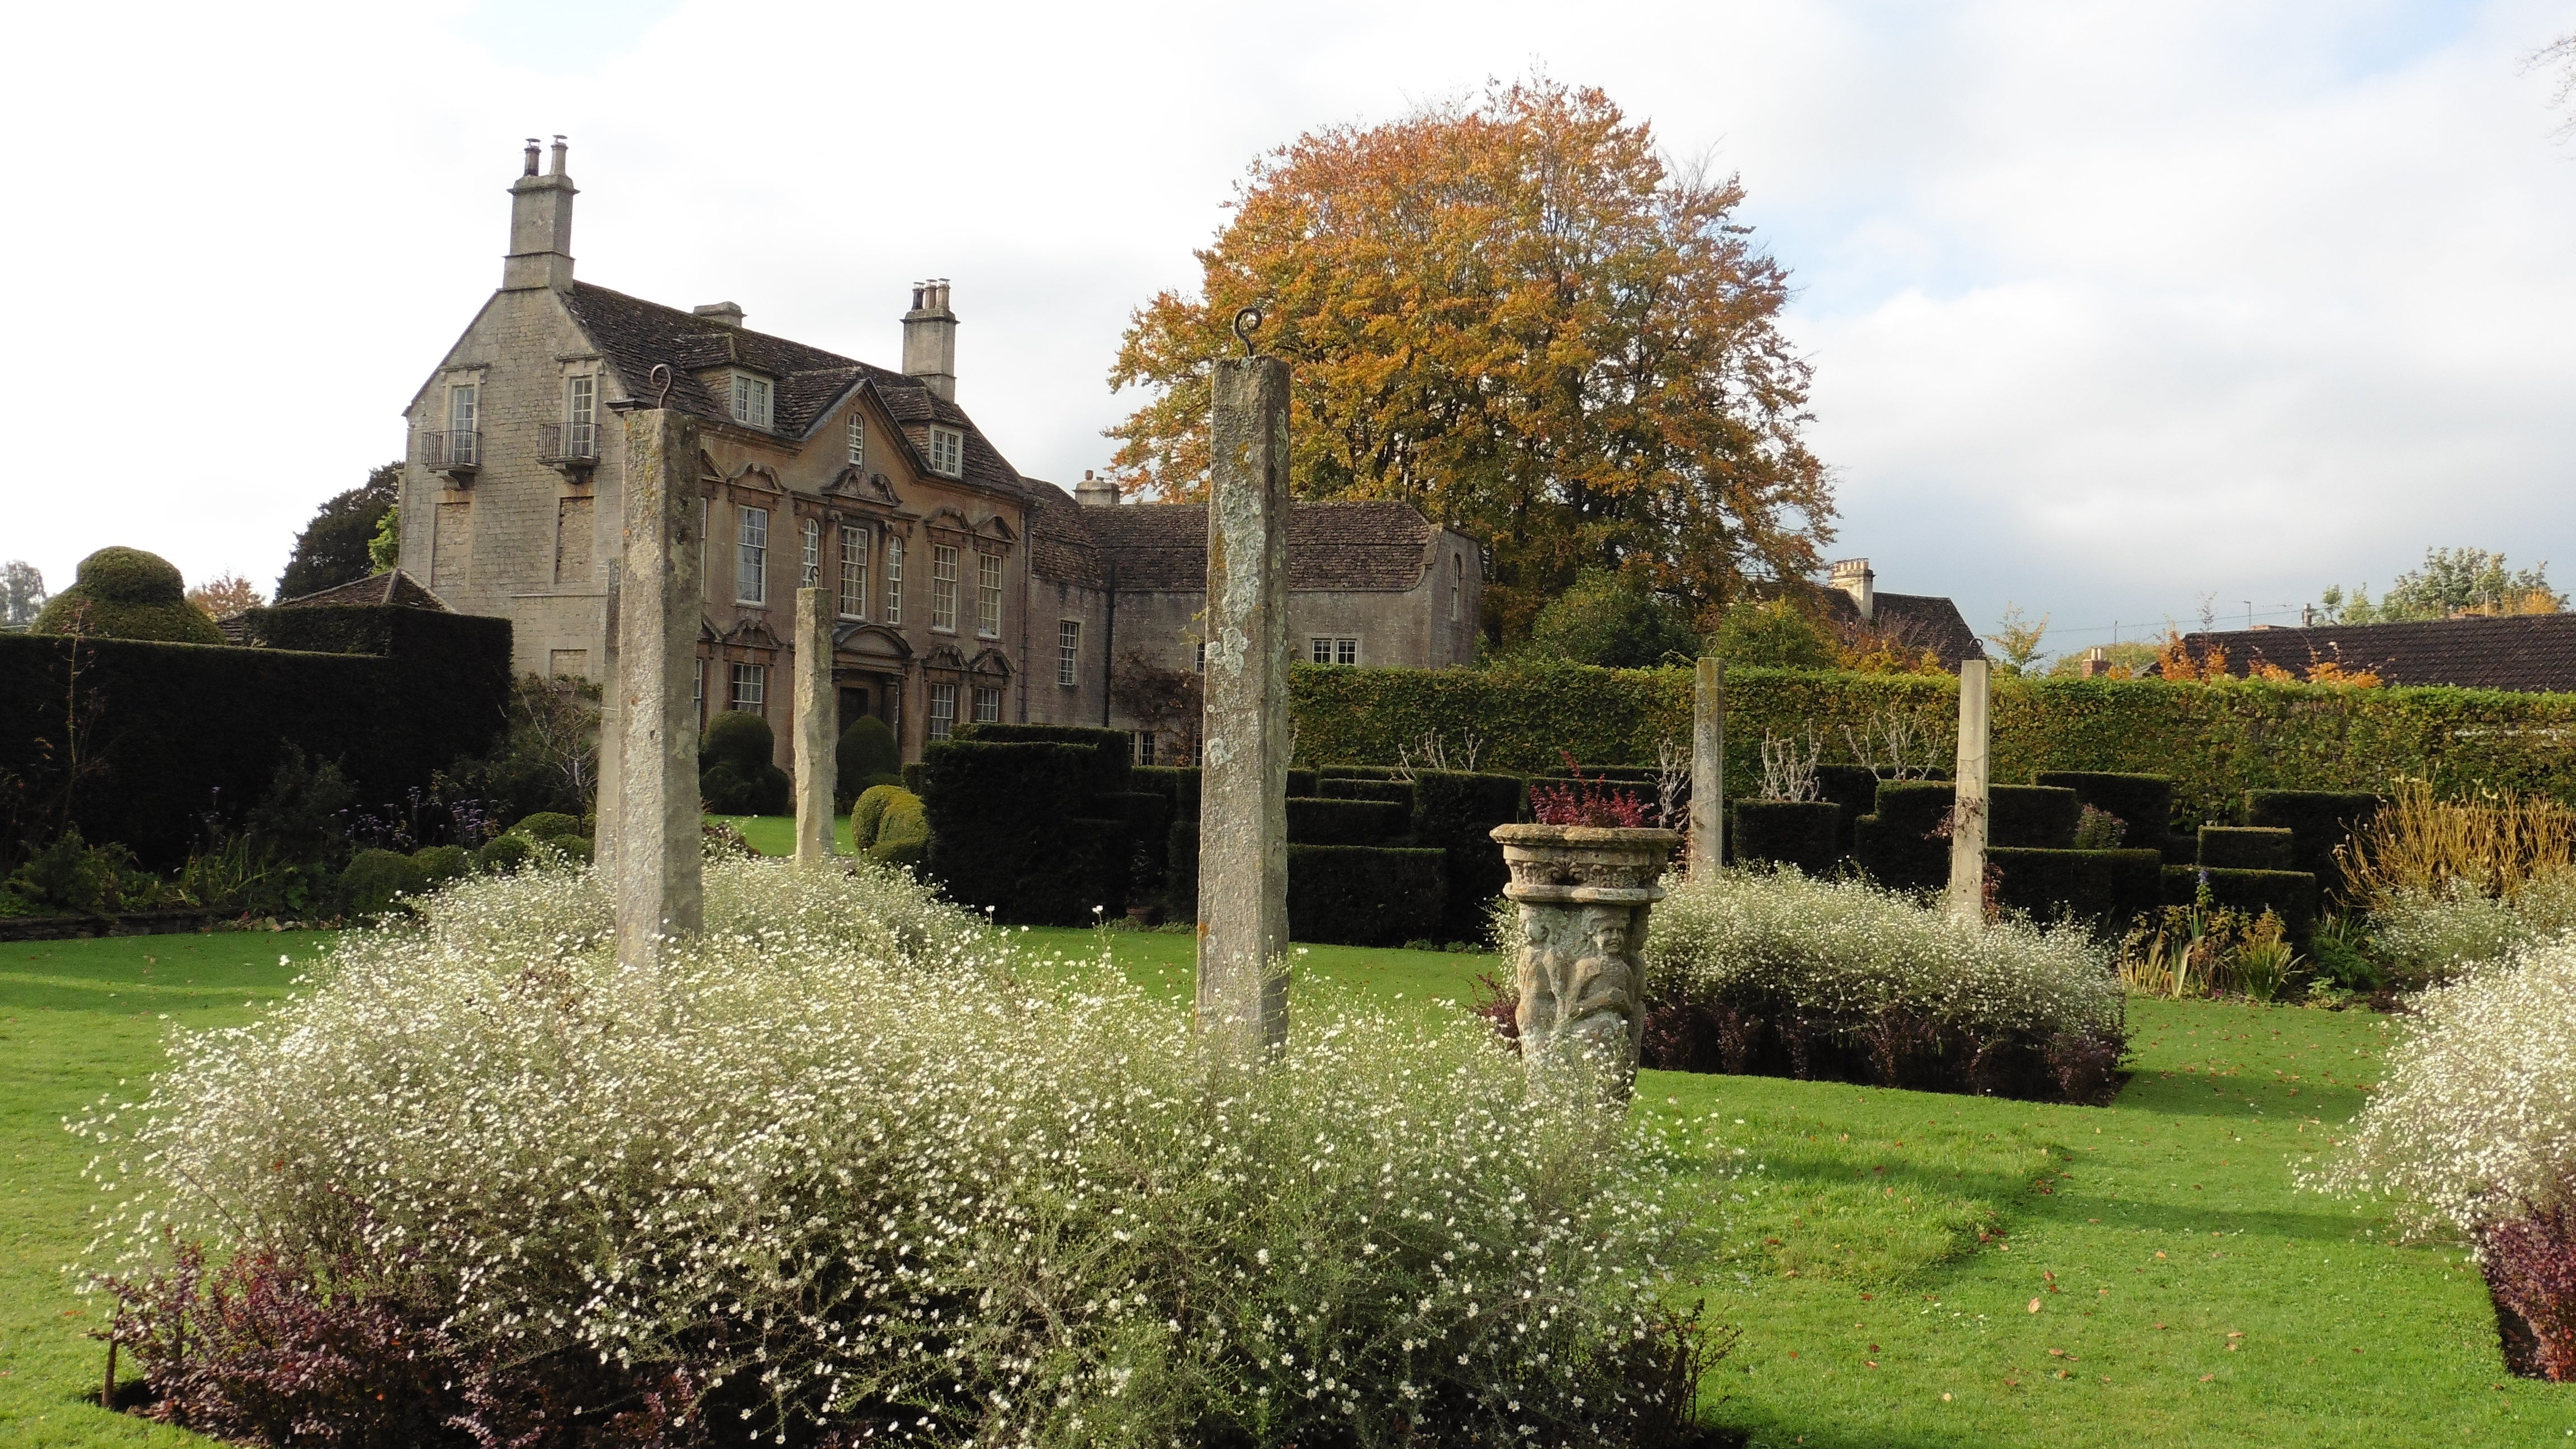 A view of the Pillar Lawn at The Courts garden, Holt in autumn.